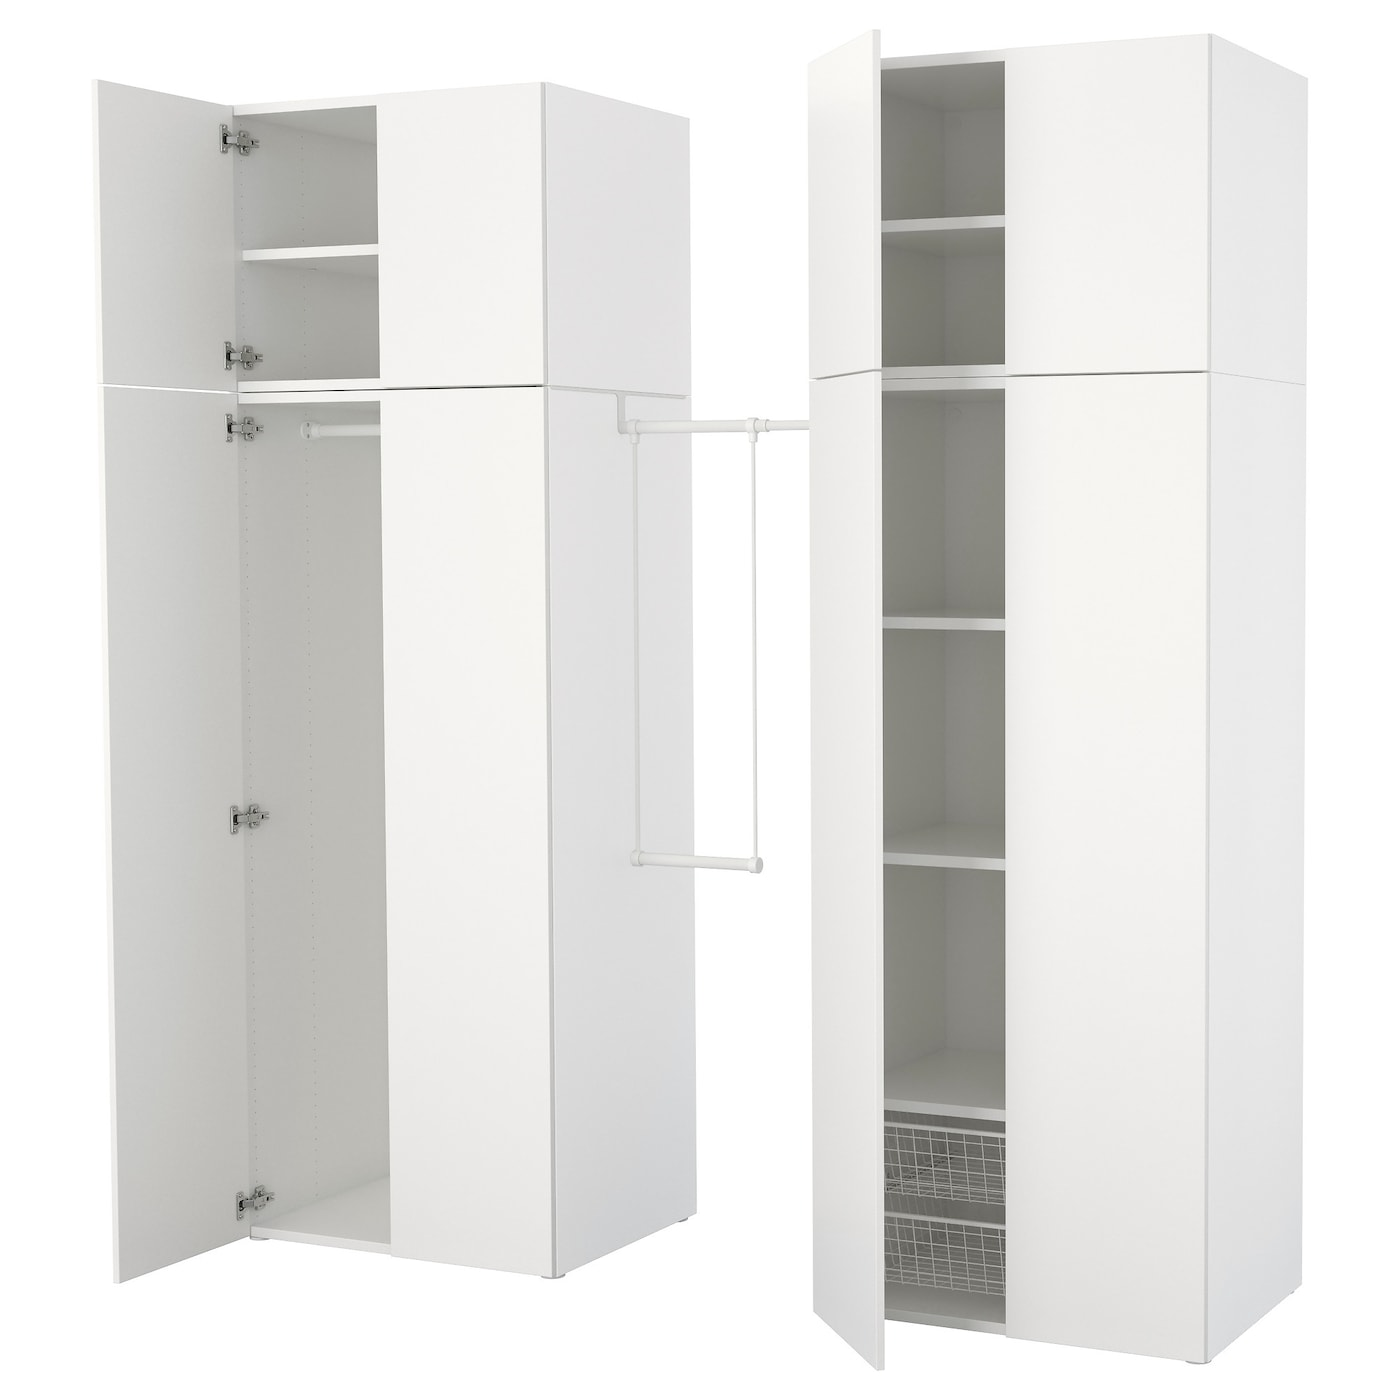 platsa armoire penderie blanc fonnes blanc 195 220 x 57 x 241 cm ikea. Black Bedroom Furniture Sets. Home Design Ideas